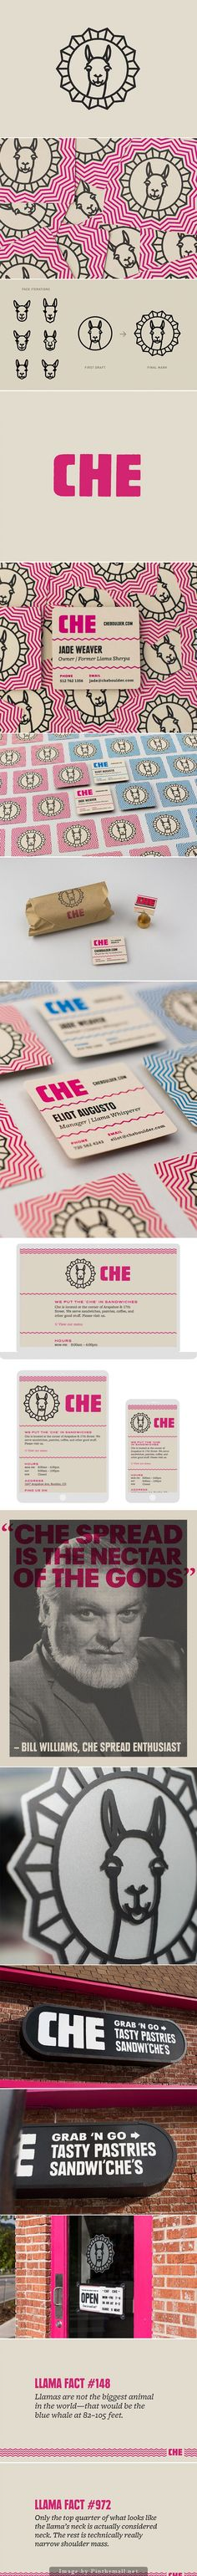 Cafe Che Cafe Che Branding / llama / logo / branding / identity / illustration / animal drawing / geometric / simple lines and shapes / pink and black / business card / stationary / signage / restaurant Graphisches Design, Design Logo, Brand Identity Design, Graphic Design Branding, Corporate Design, Corporate Identity, Visual Identity, Design Cars, Signage Design